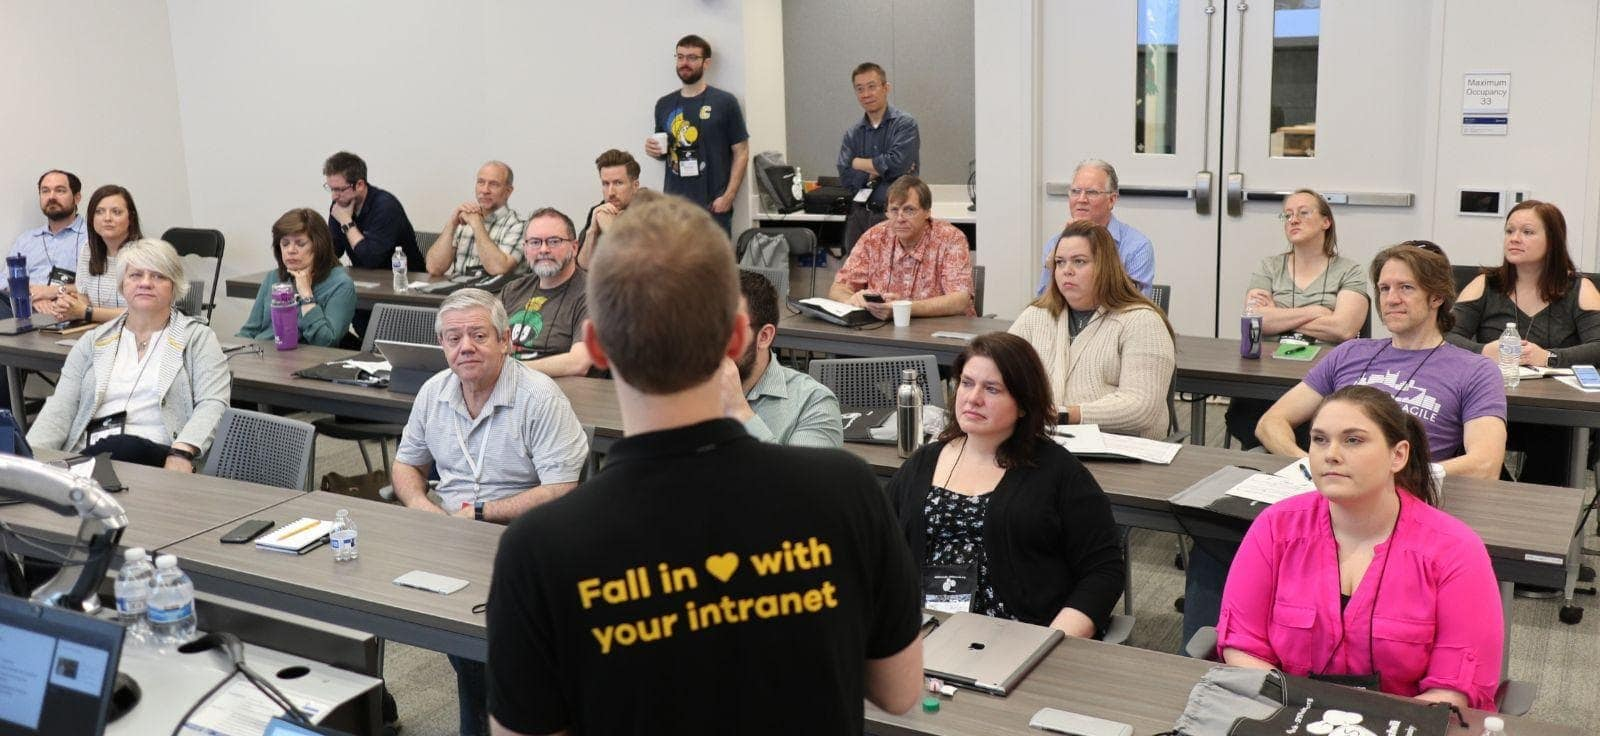 Antti K. Koskela having a session about Citizen Developer tools at a SharePoint Saturday